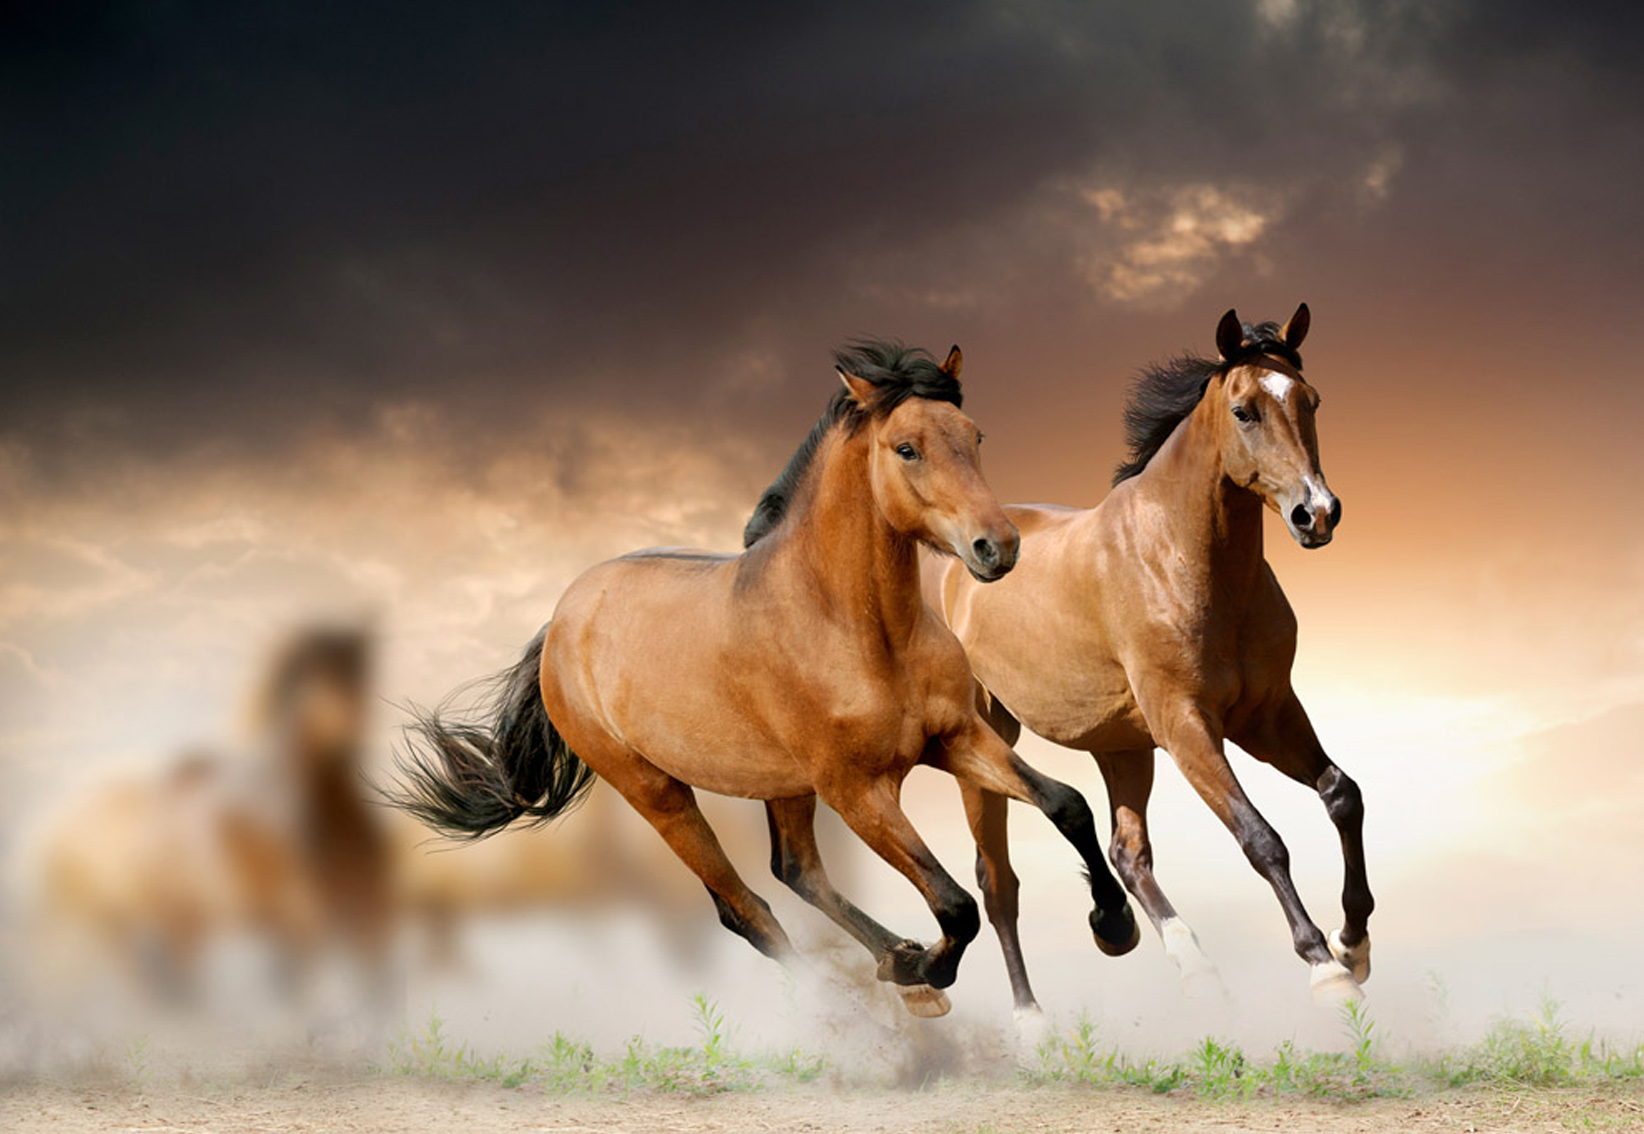 hot sale 5D Diamond painting two horse aniamls Home decor Wall painting gift square diamond factory price 58x40cm LLLB935(China (Mainland))